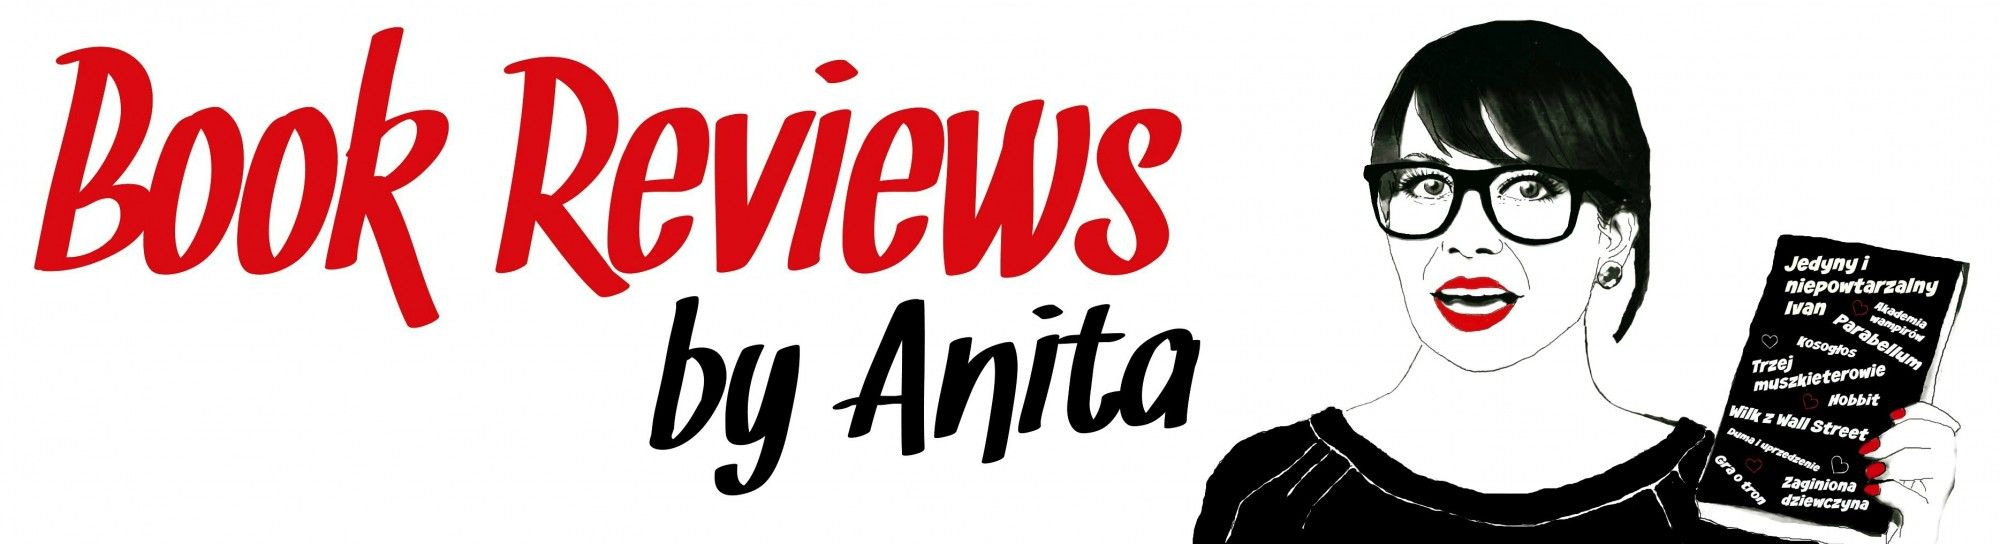 Book Reviews by Anita